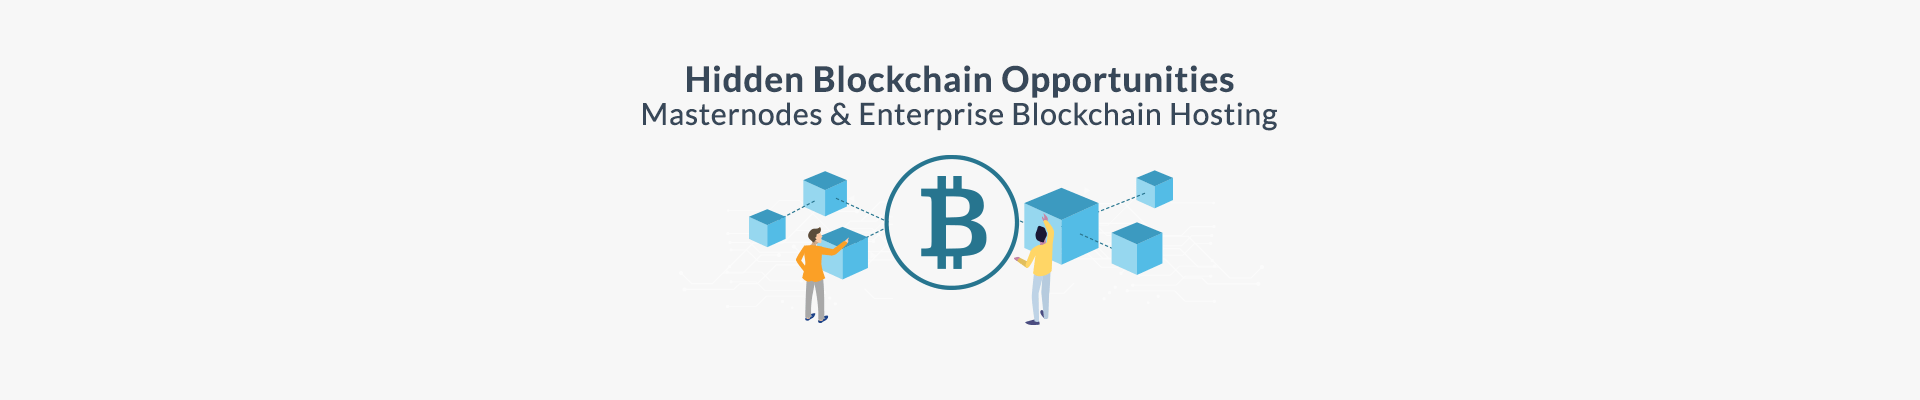 Hidden Blockchain Opportunities - Masternodes and Enterprise Hosting - Plesk